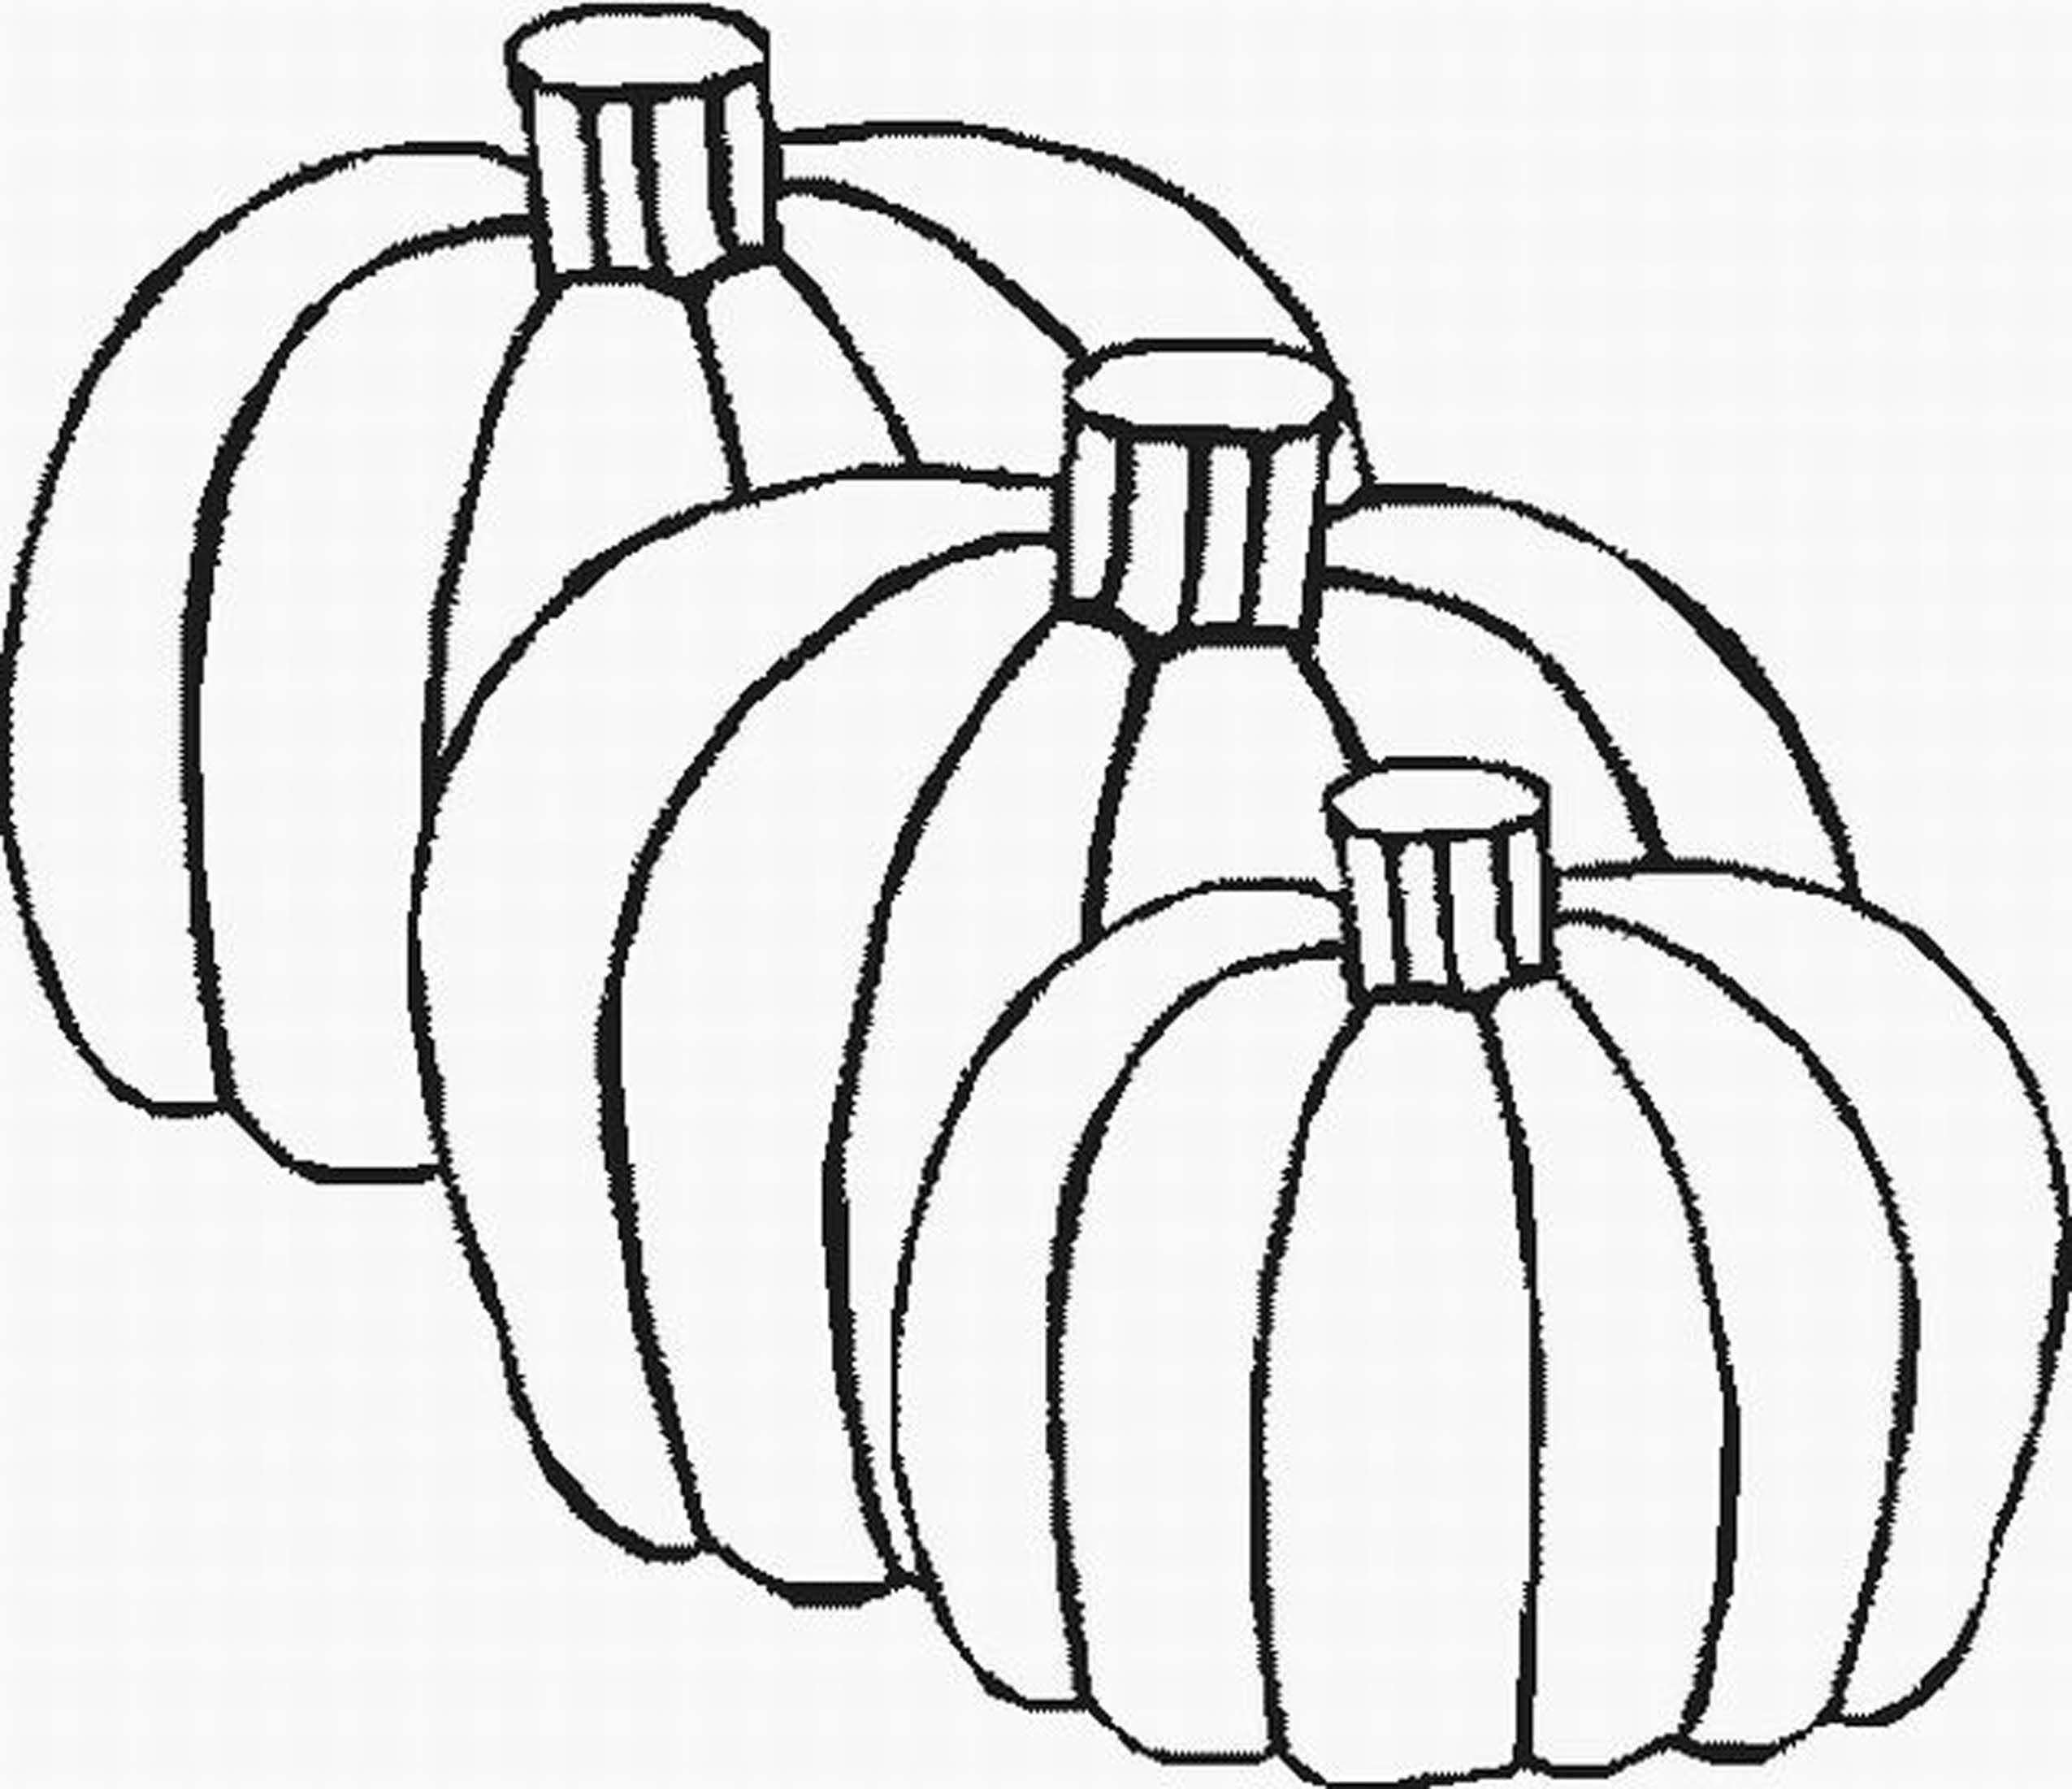 Fall pumpkin coloring pages to print coloring home for Pumpkin coloring pages free printable